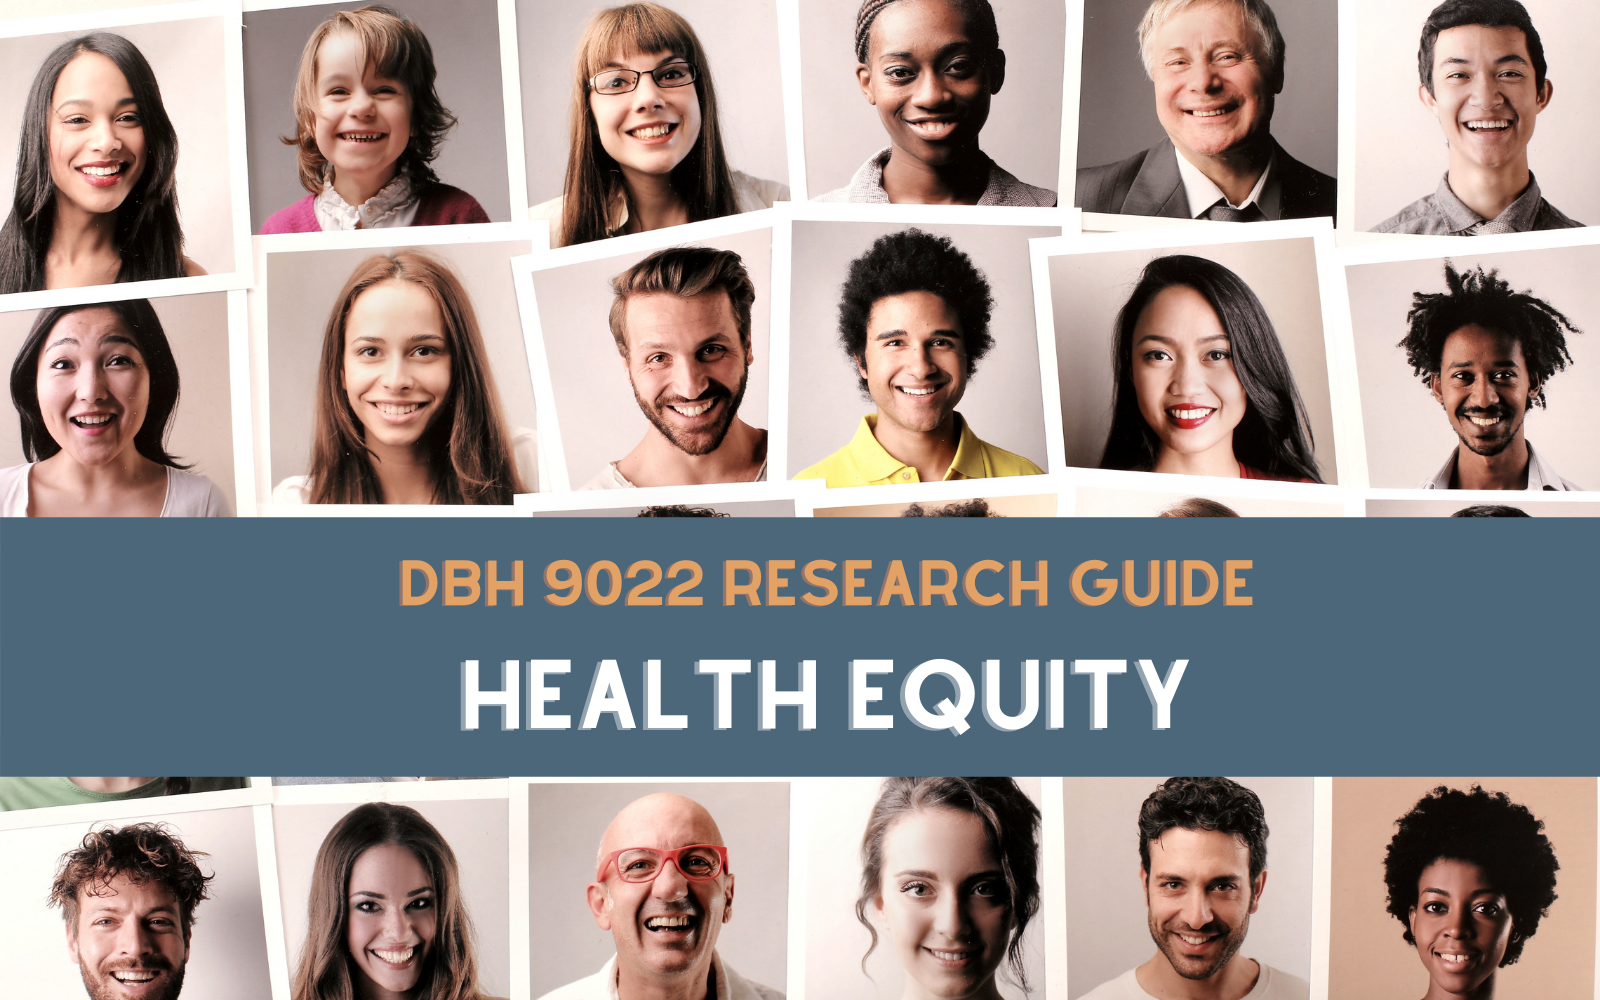 Visit the DBH 9022 Health Equity Research Guide